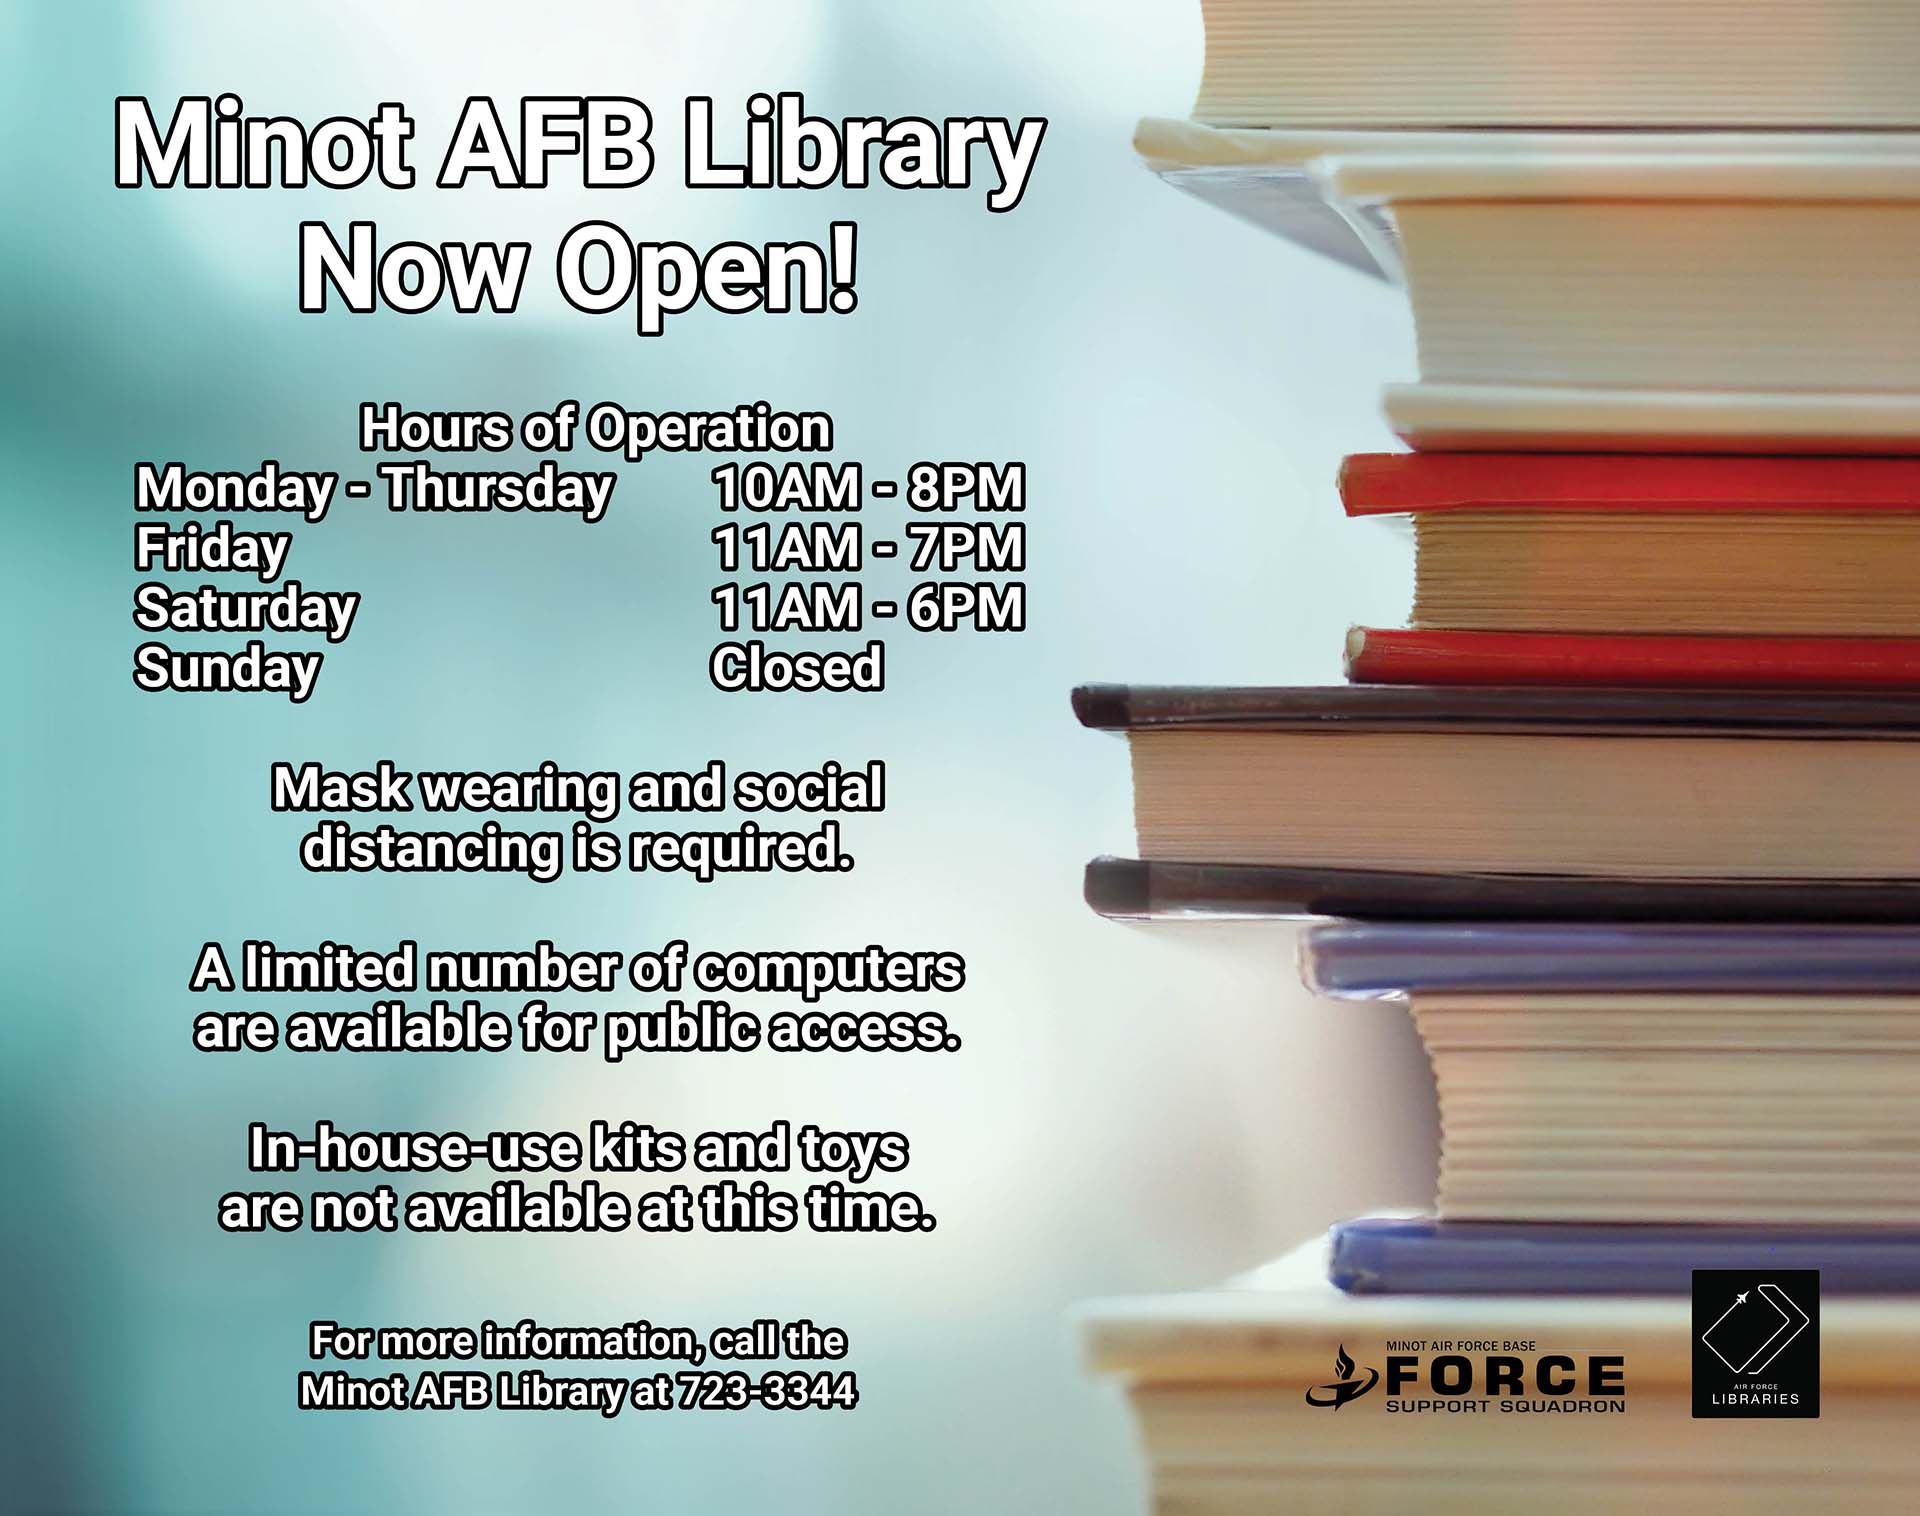 Minot AFB Library - Now Open